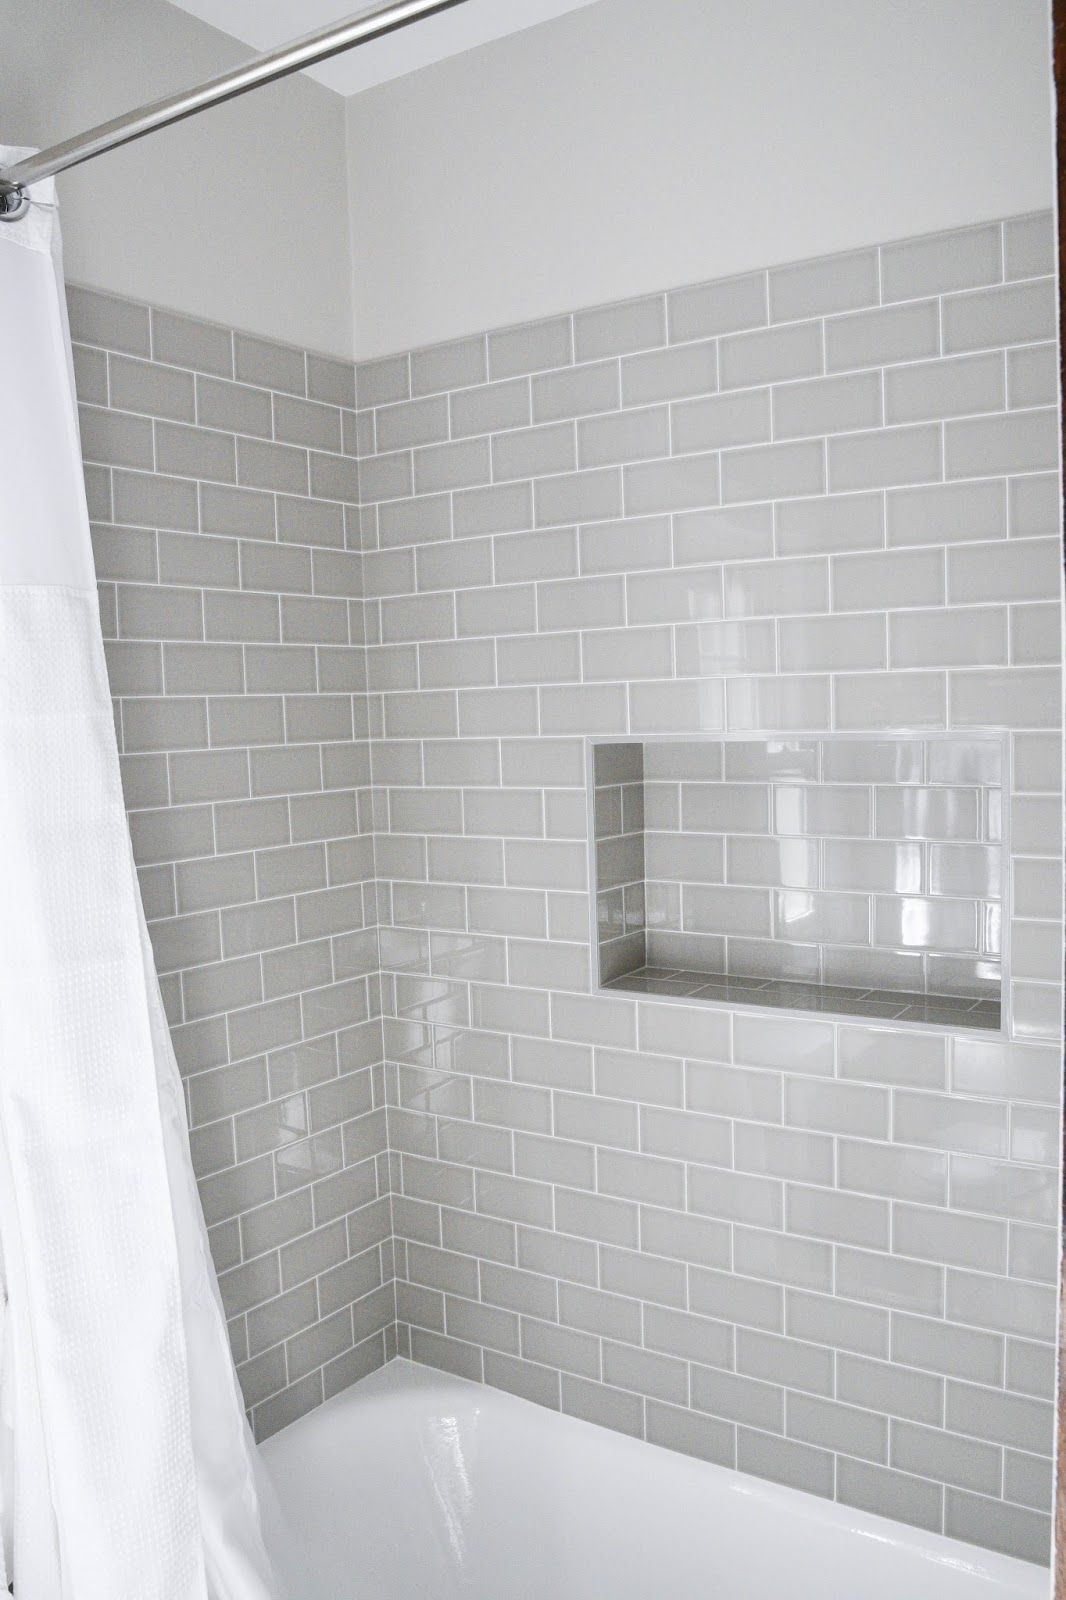 Bathroom Subway Tile Design Modern Meets Traditional Styled Bathroom  Subway Tile Showers